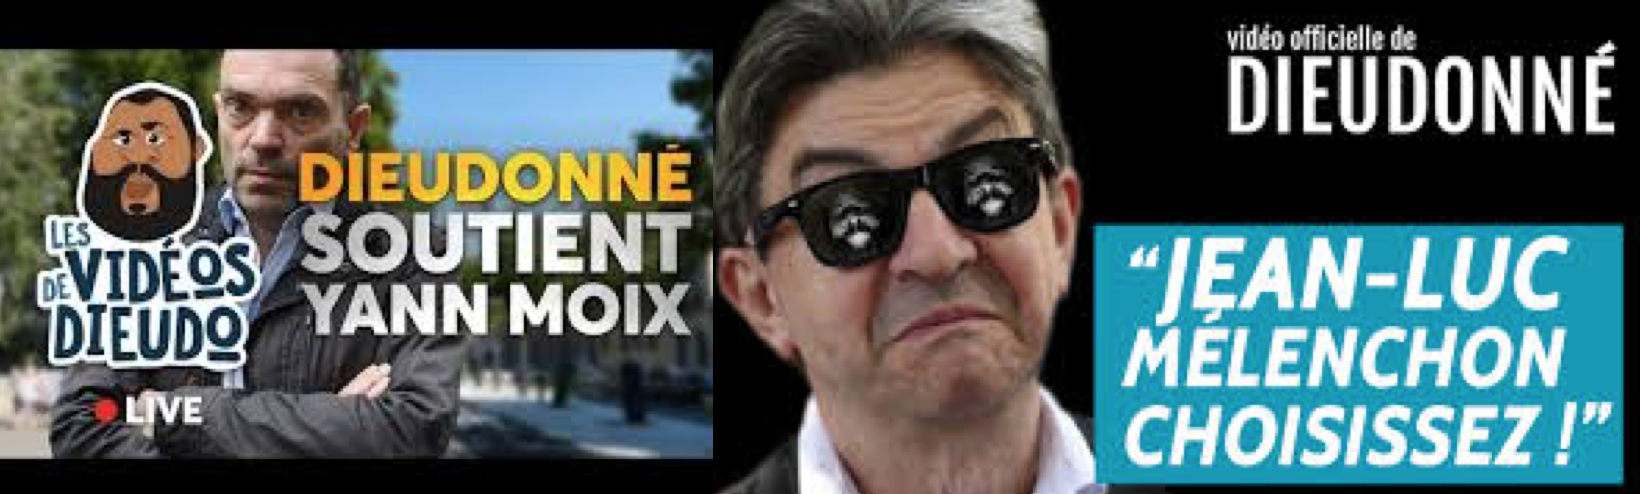 Pierre Cassen : antisémitisme, Dieudonné menace de balancer Moix ! (video)